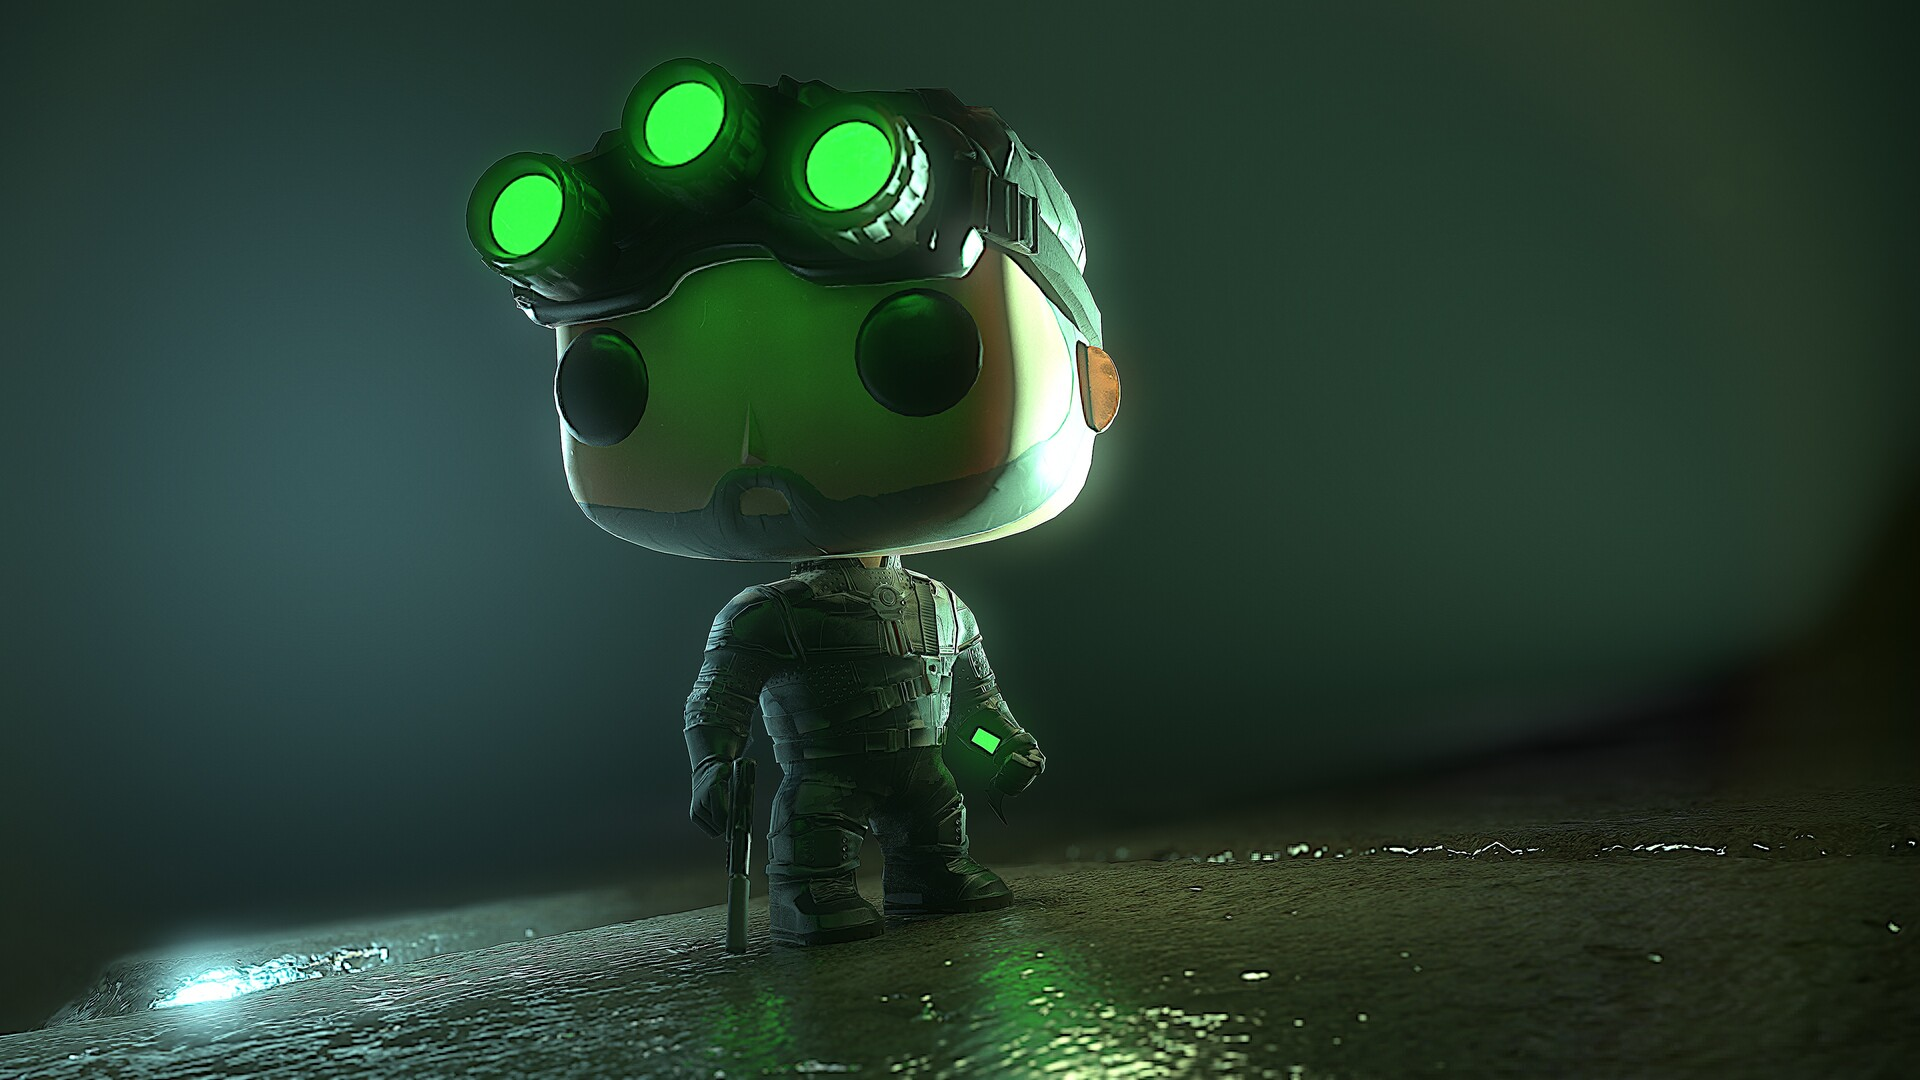 Artstation Splinter Cell Funko Pop Tomasz Libisz